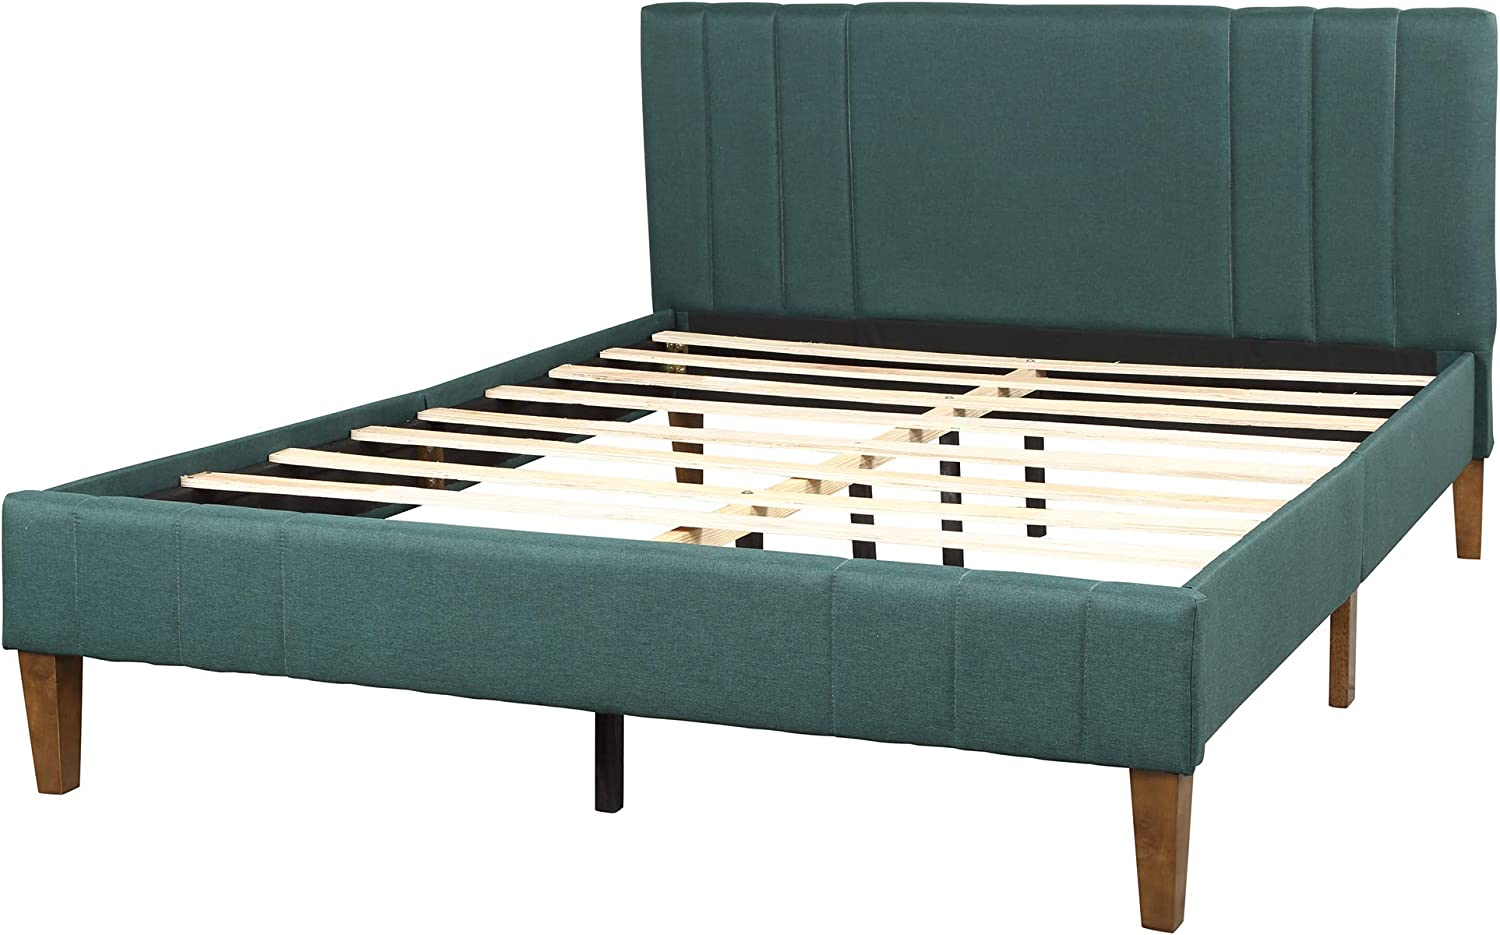 Queen Bed Frame, Merax Upholstered Platform Bed with Headboard, No Box Spring Needed, Queen Size, Green